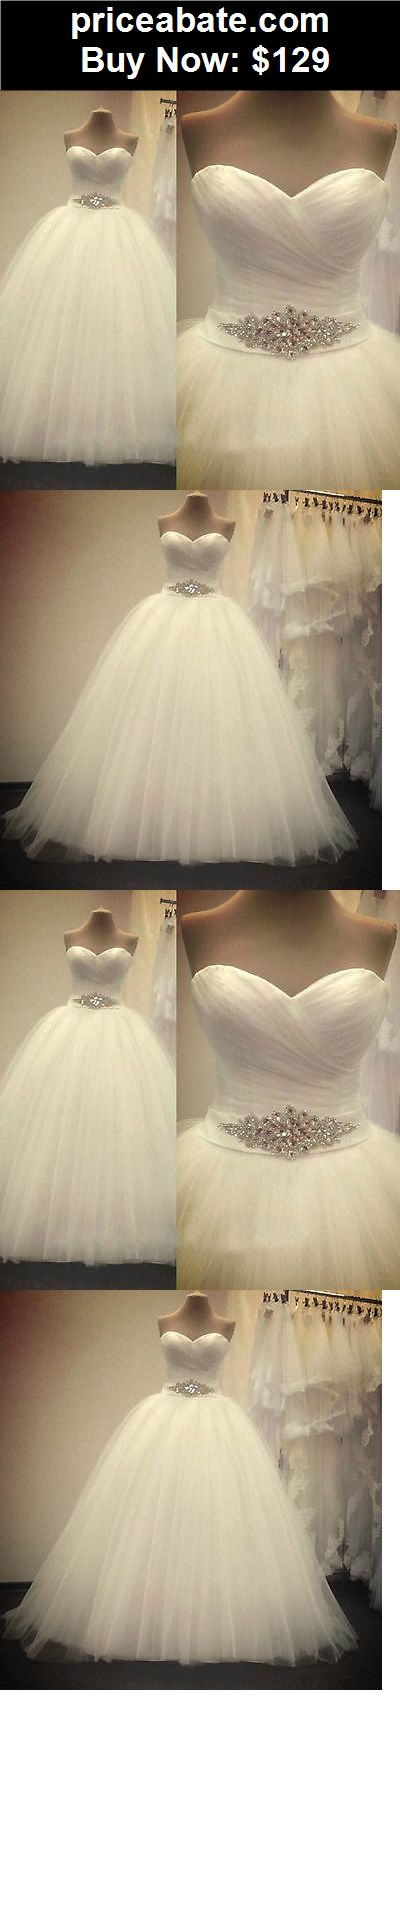 Wedding-Dresses: New White/Ivory Wedding Dress bridal Gown Custom Size 6 8 10 12 14 16 18++++++ - BUY IT NOW ONLY $129